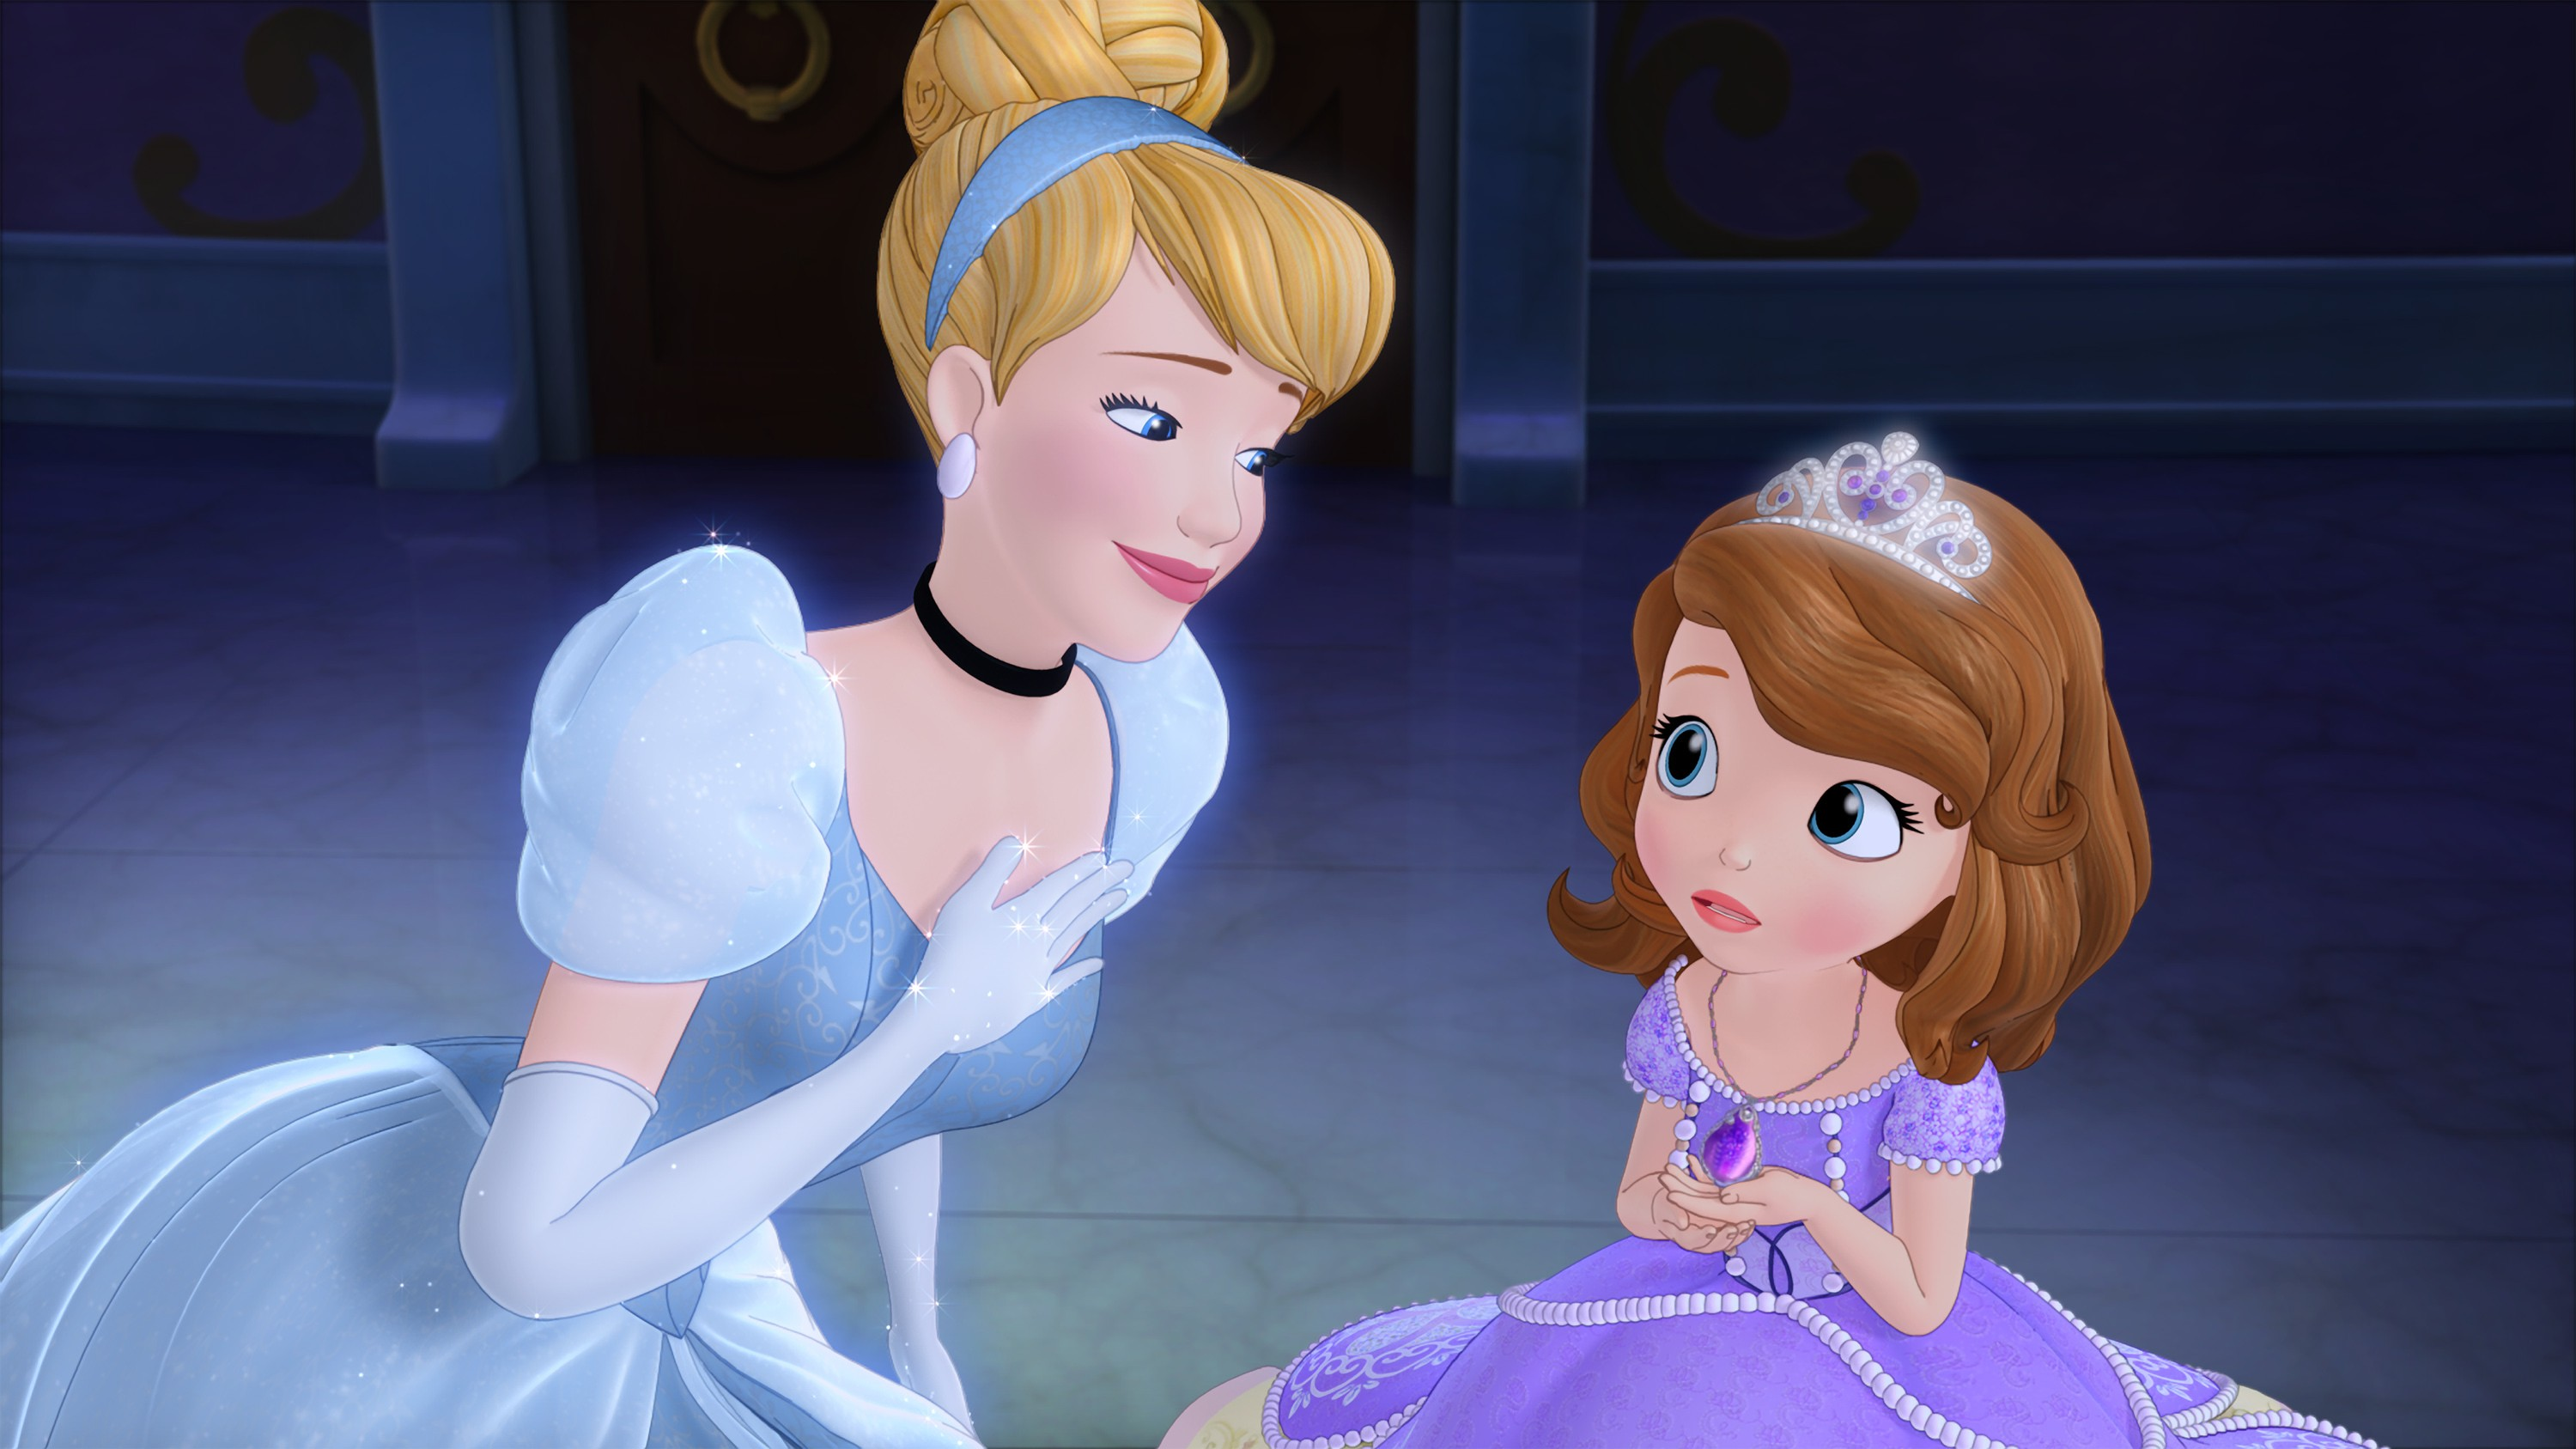 Possibilities and Worlds of Fantasy #disneyjuniormom